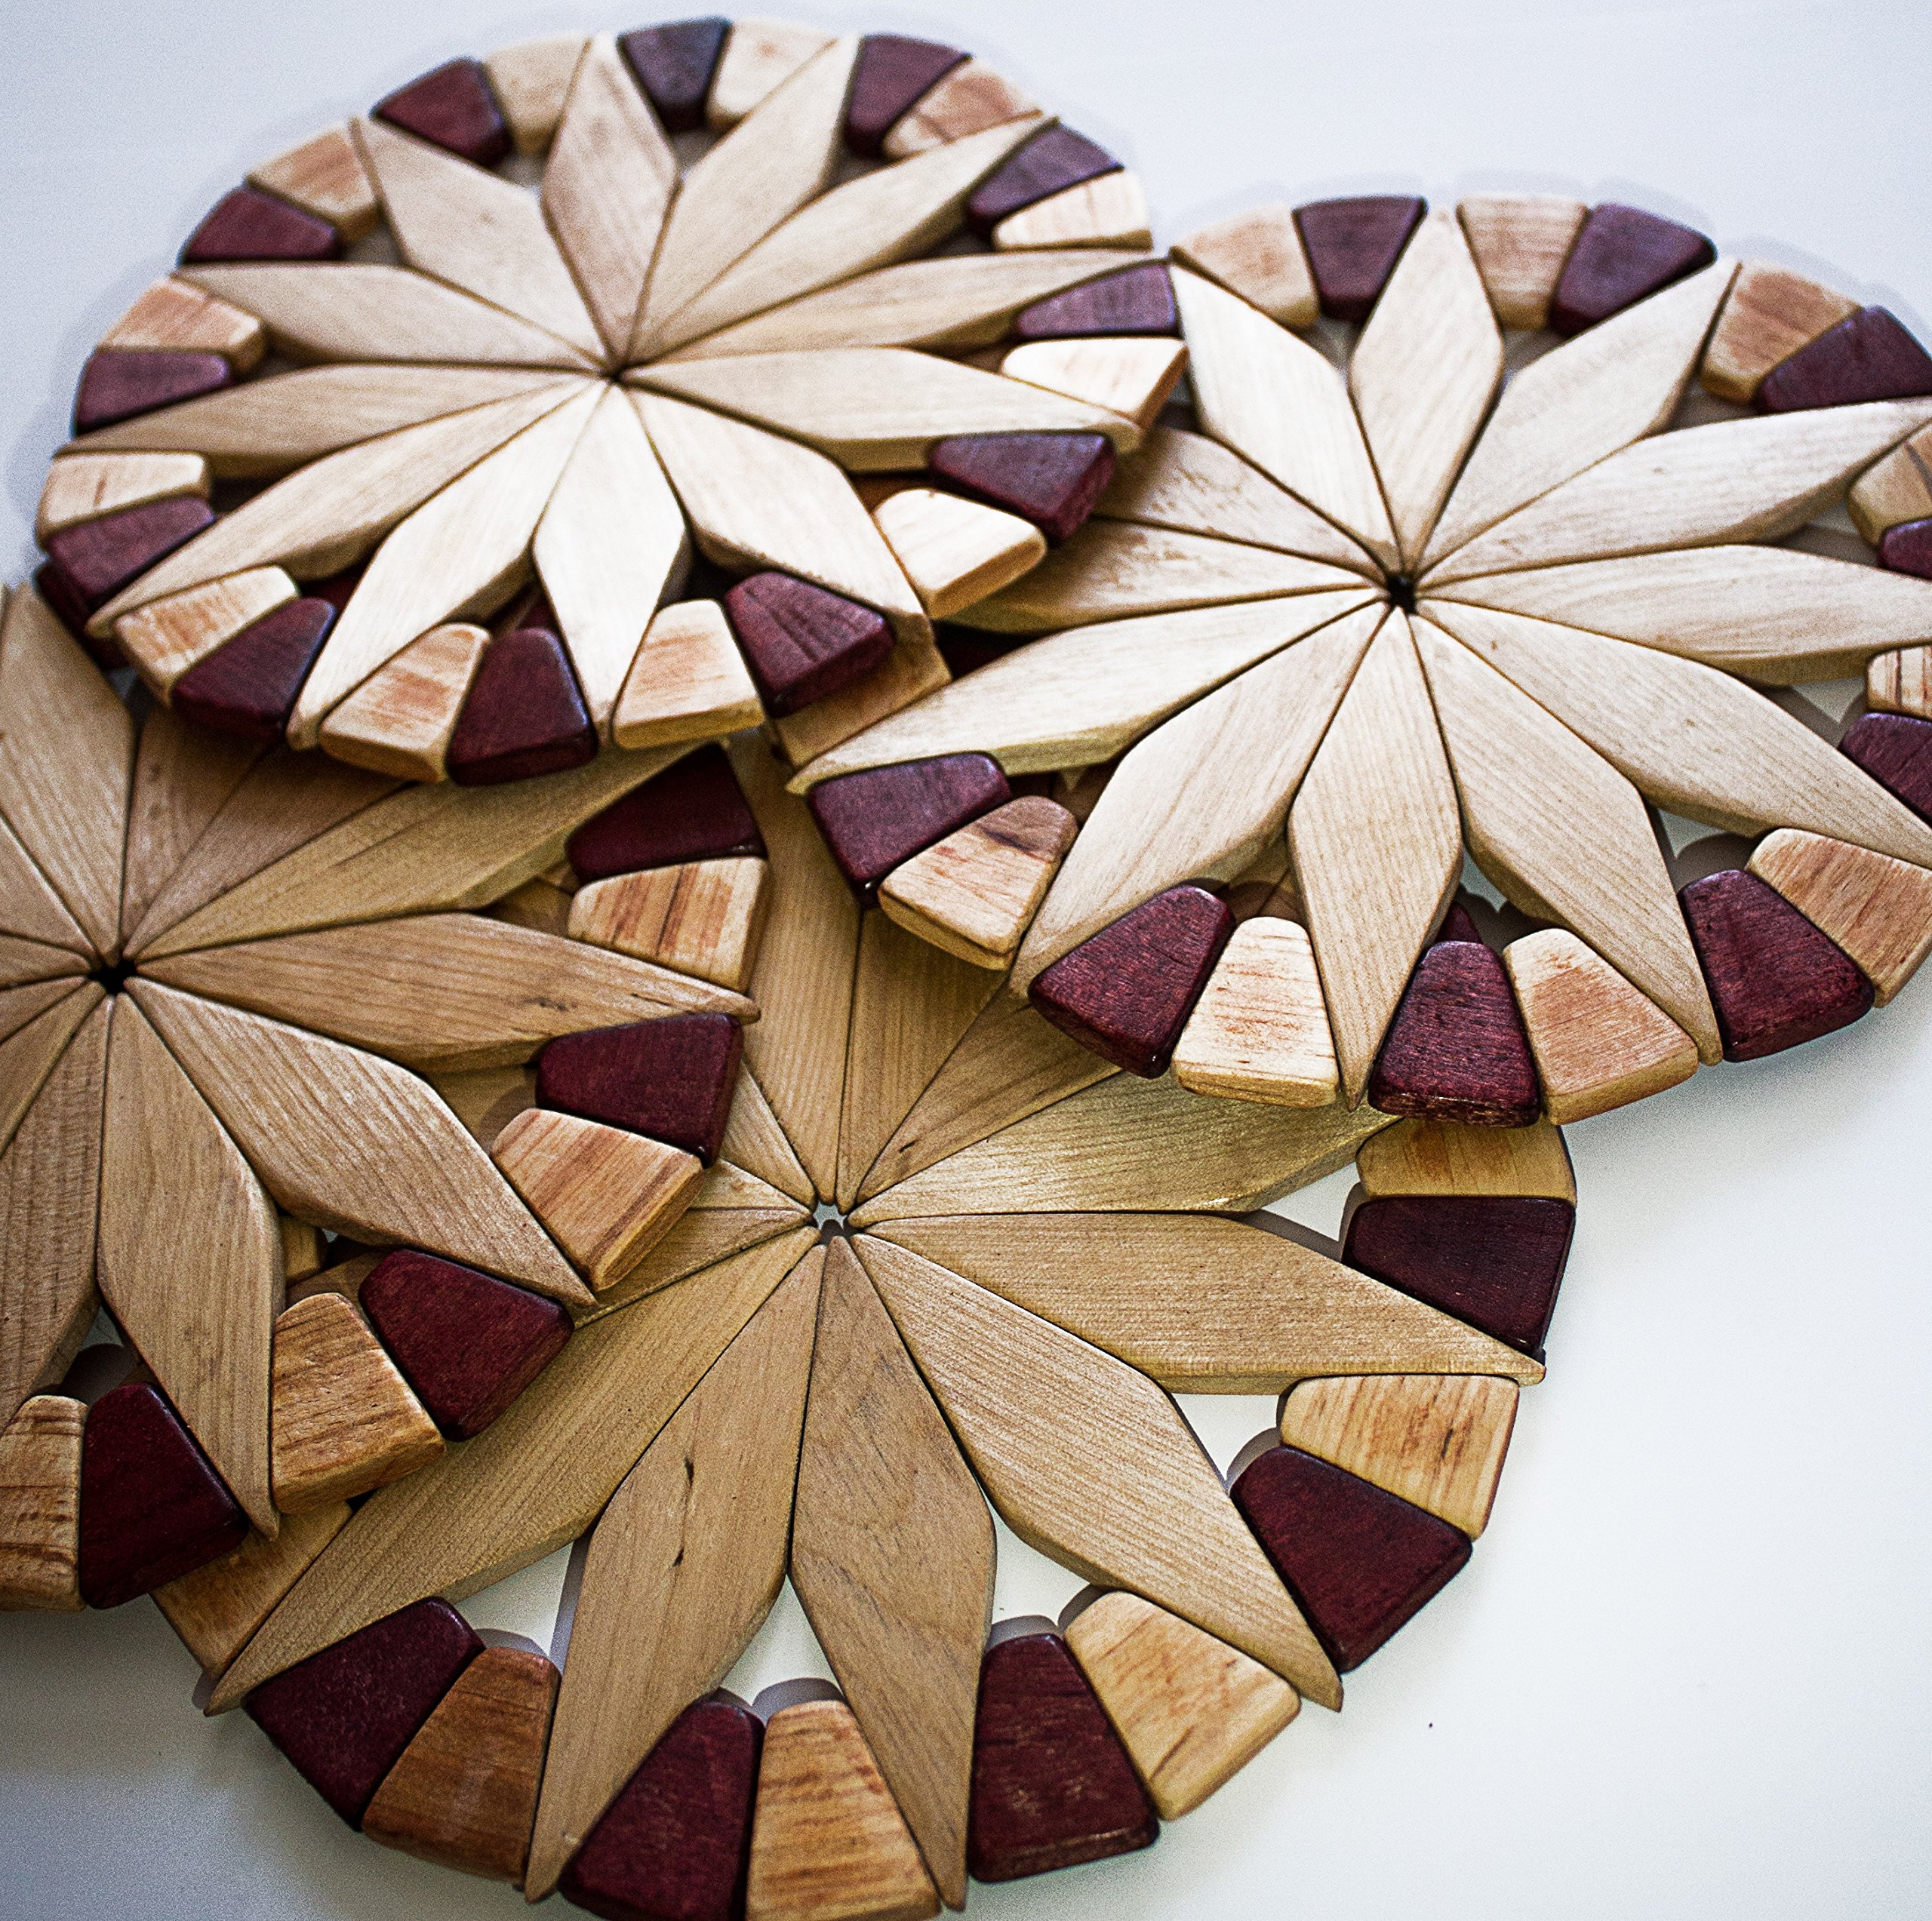 Natural Wood Trivets For Hot Dishes - 2 Eco-friendly, Sturdy and Durable 7'' Kitchen Hot Pads. Handmade Festive Design Table Decor - Perfect Kitchen Gifts Idea. by ECOSALL (Image #5)